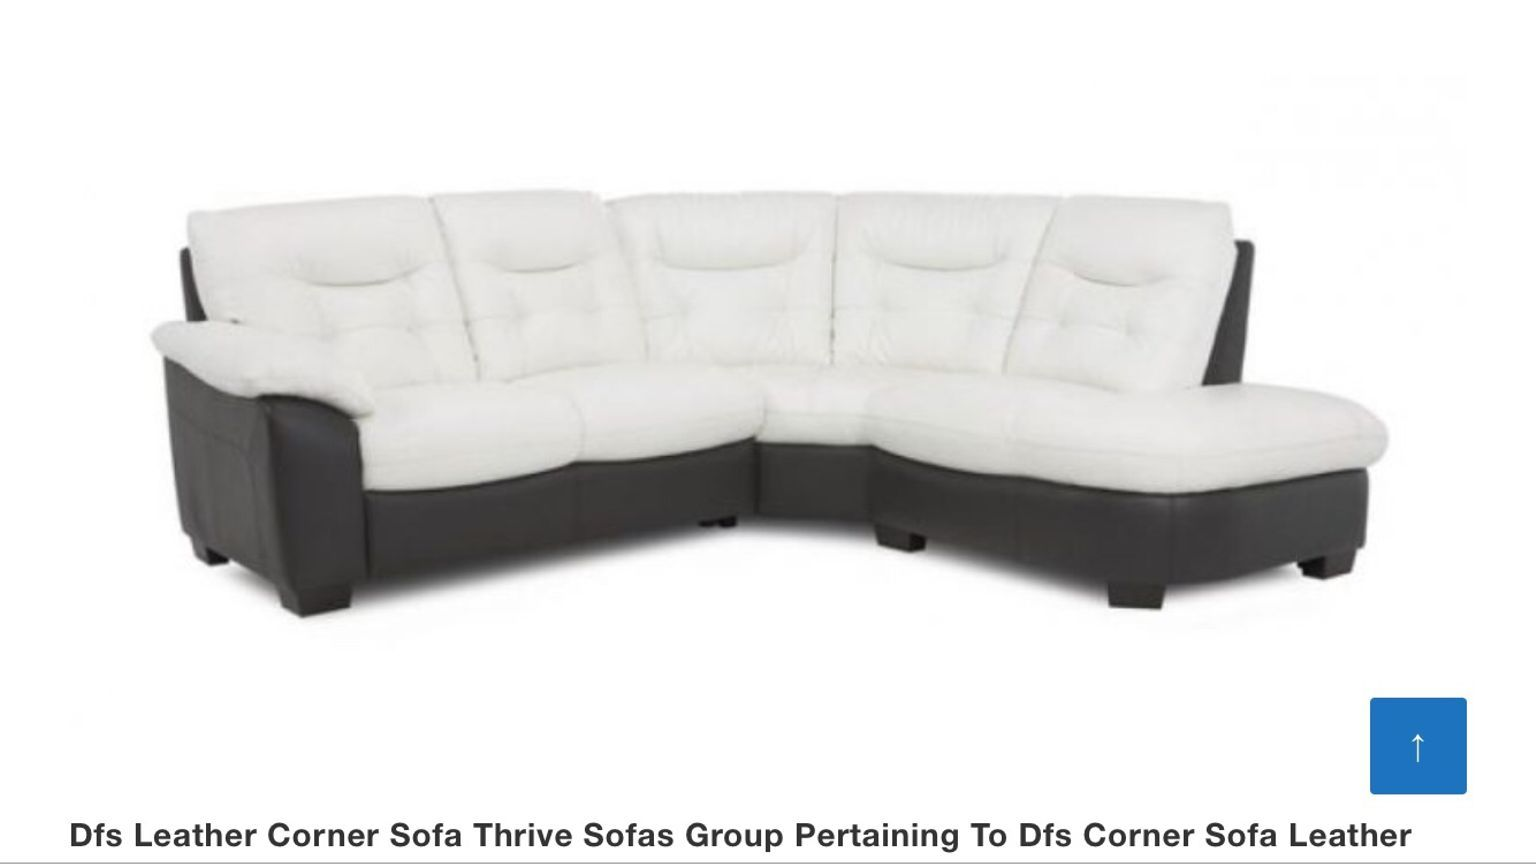 Dfs Sofas Leather Corner In 2020 Dfs Leather Corner Sofa Dfs Sofa Leather Corner Sofa